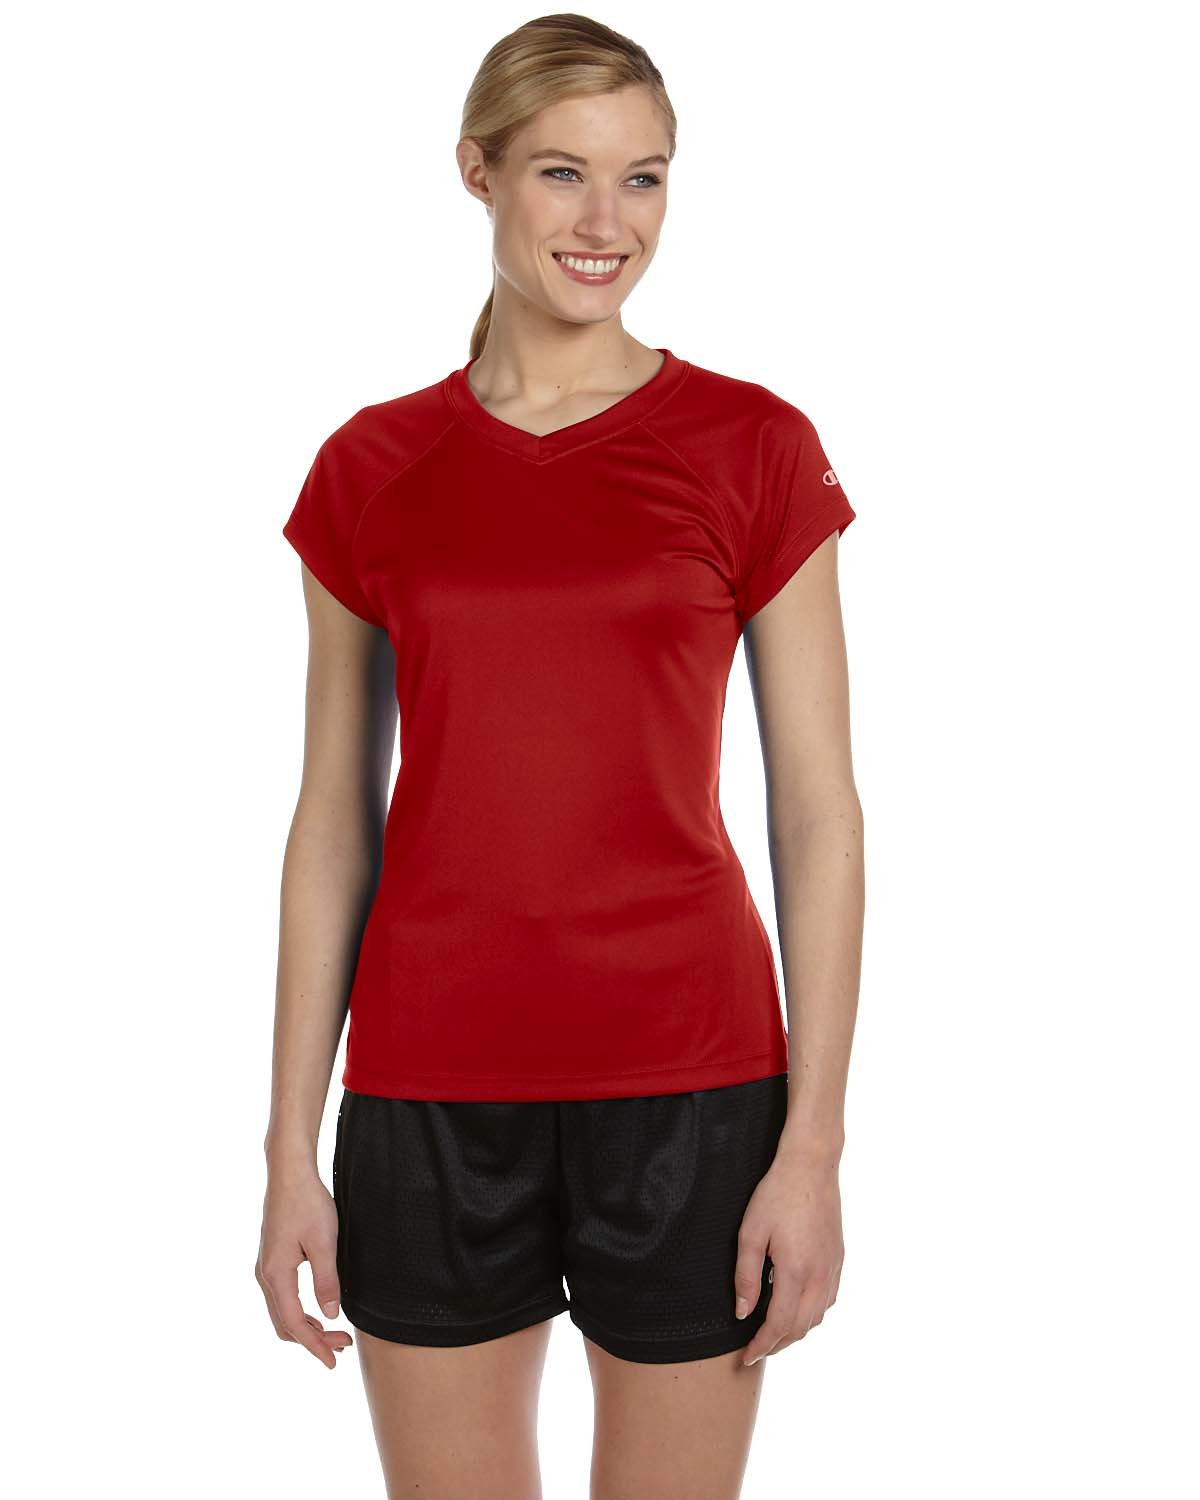 Champion Women's Essential Double Dry V-Neck Tee, Scarlet, Size-L CW23